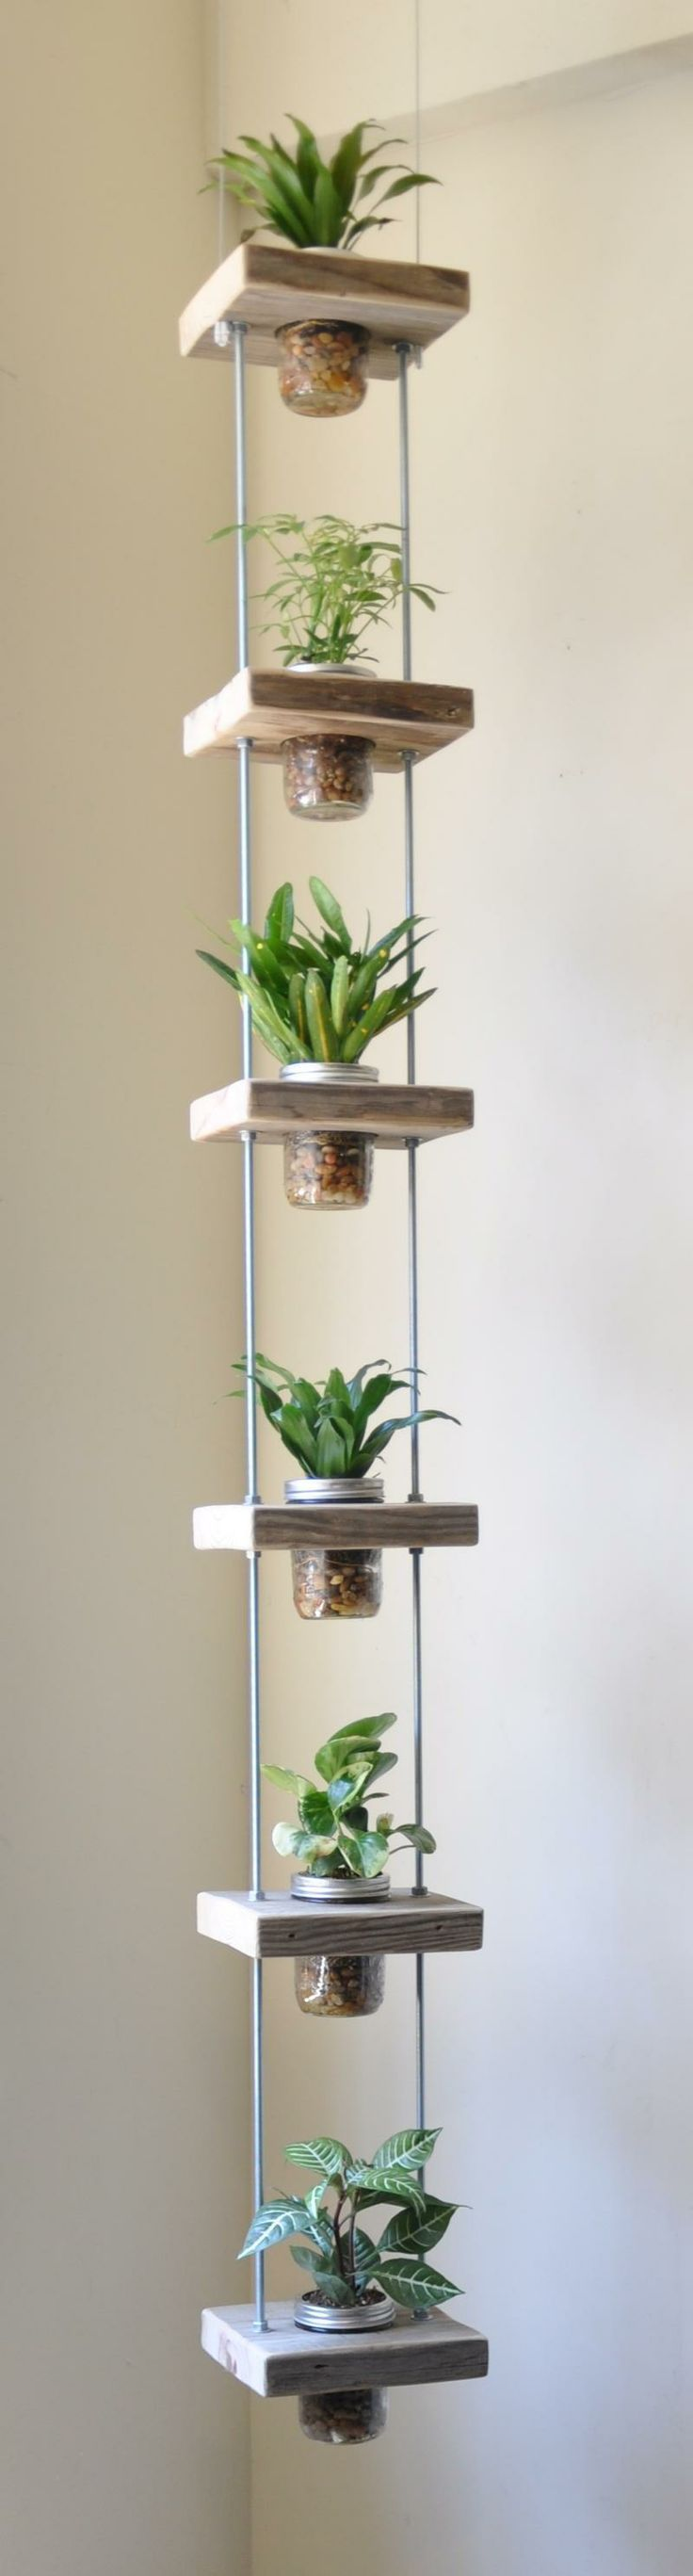 vertical hanging herbs If you happen to only have a small empty corner in your kitchen, this vertical planter is just for you. It won't take up much room and you can put the herbs that kitty eats on top. (via Decorating Your Small Space)                                                                                                                                                                                 More